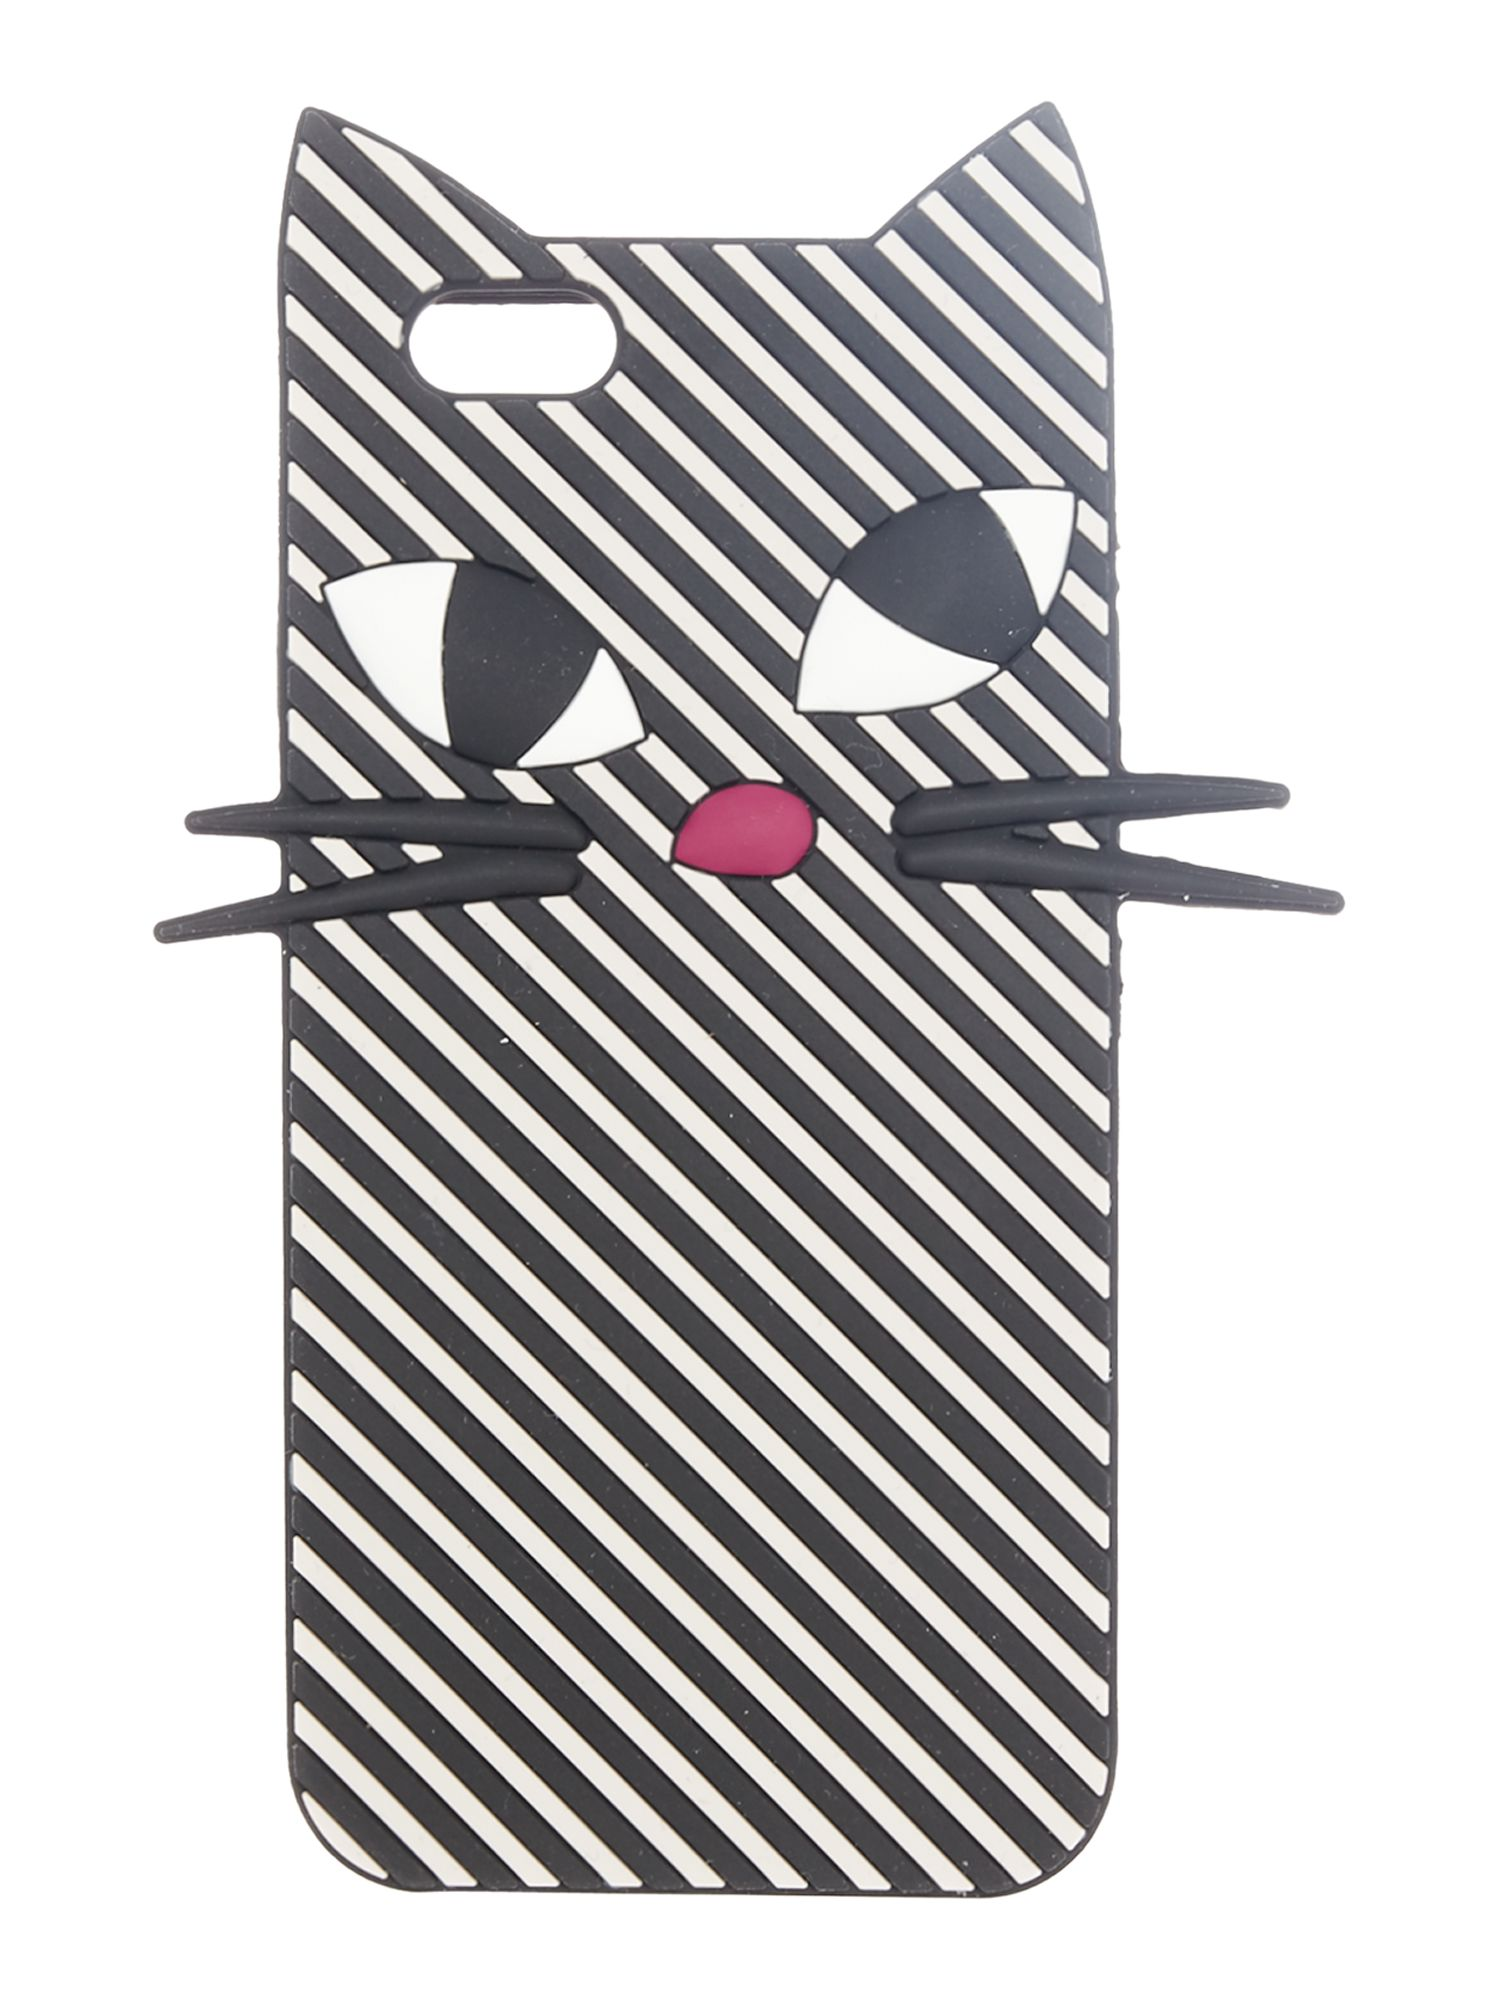 Lulu Guinness Mono stripe kooky cat iphone 6 case, Black